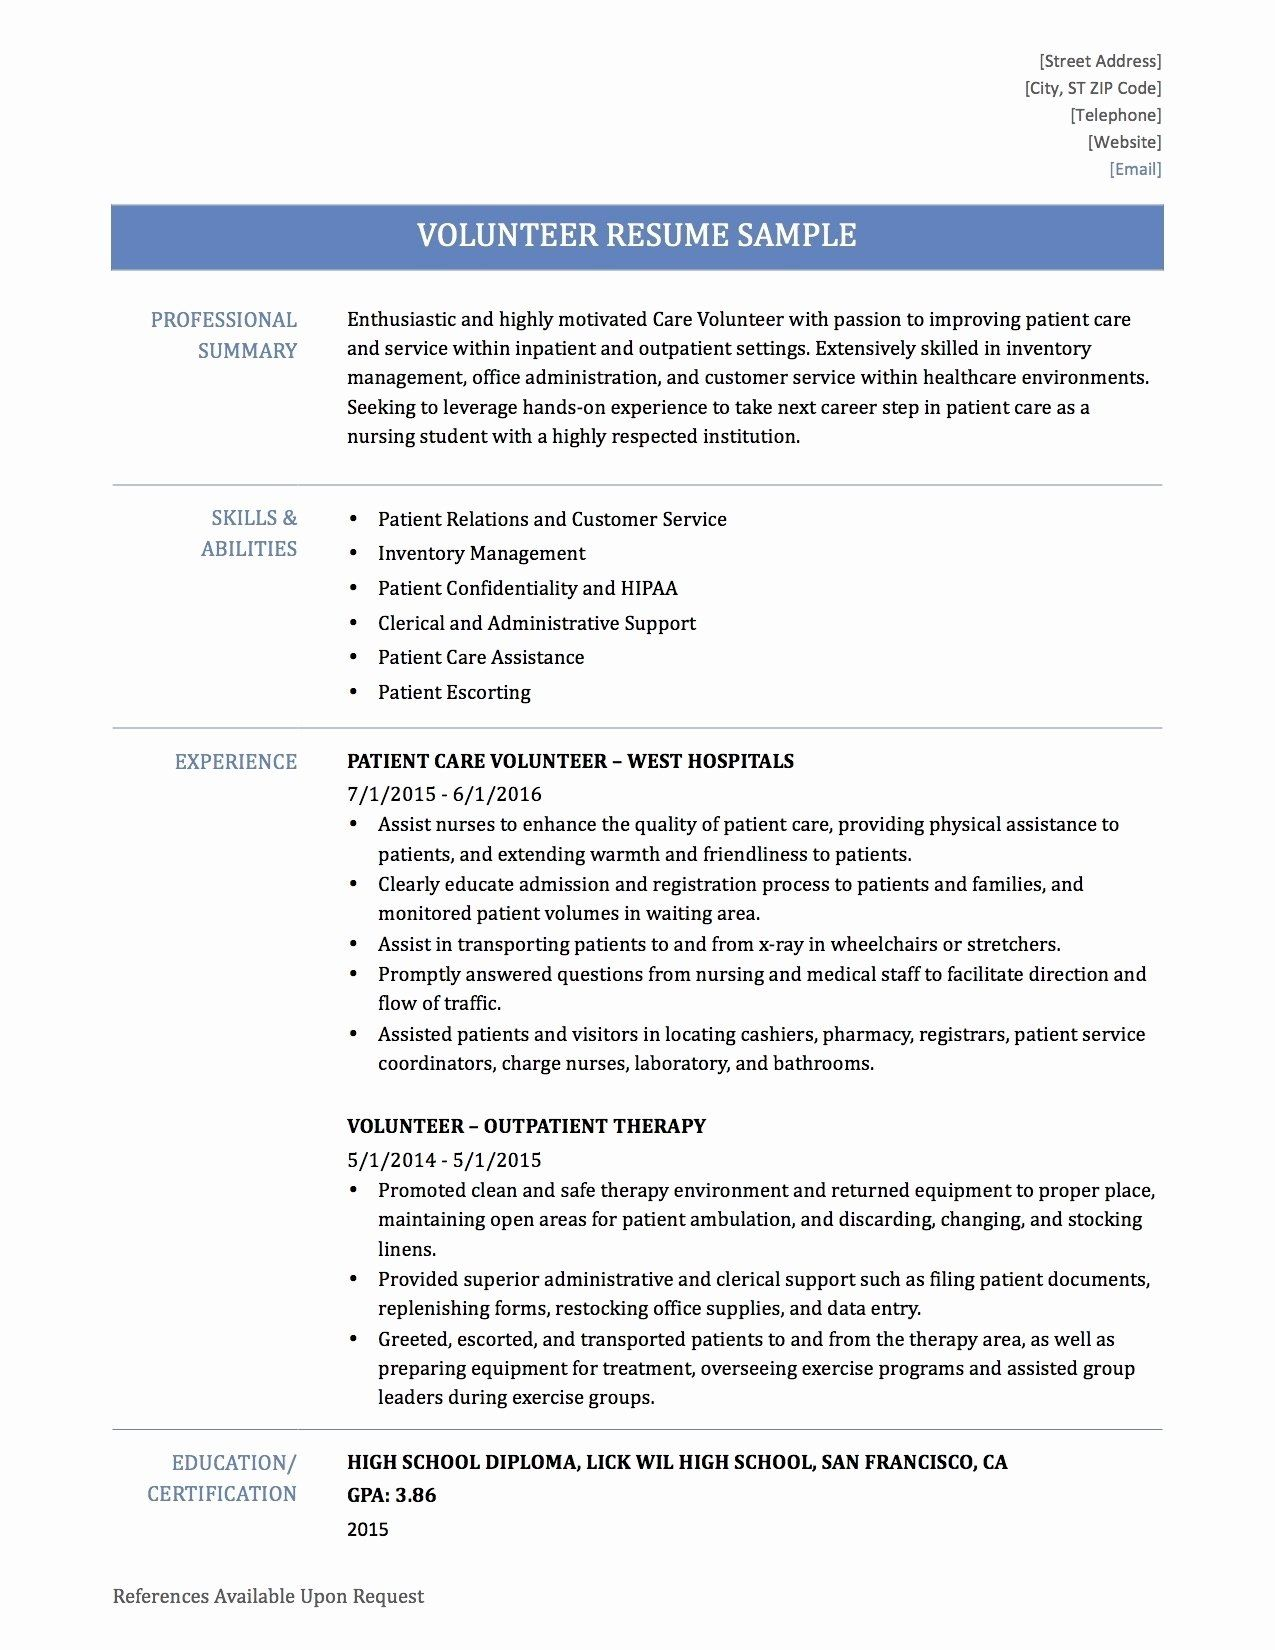 Resume Examples Volunteer Resumeexamples